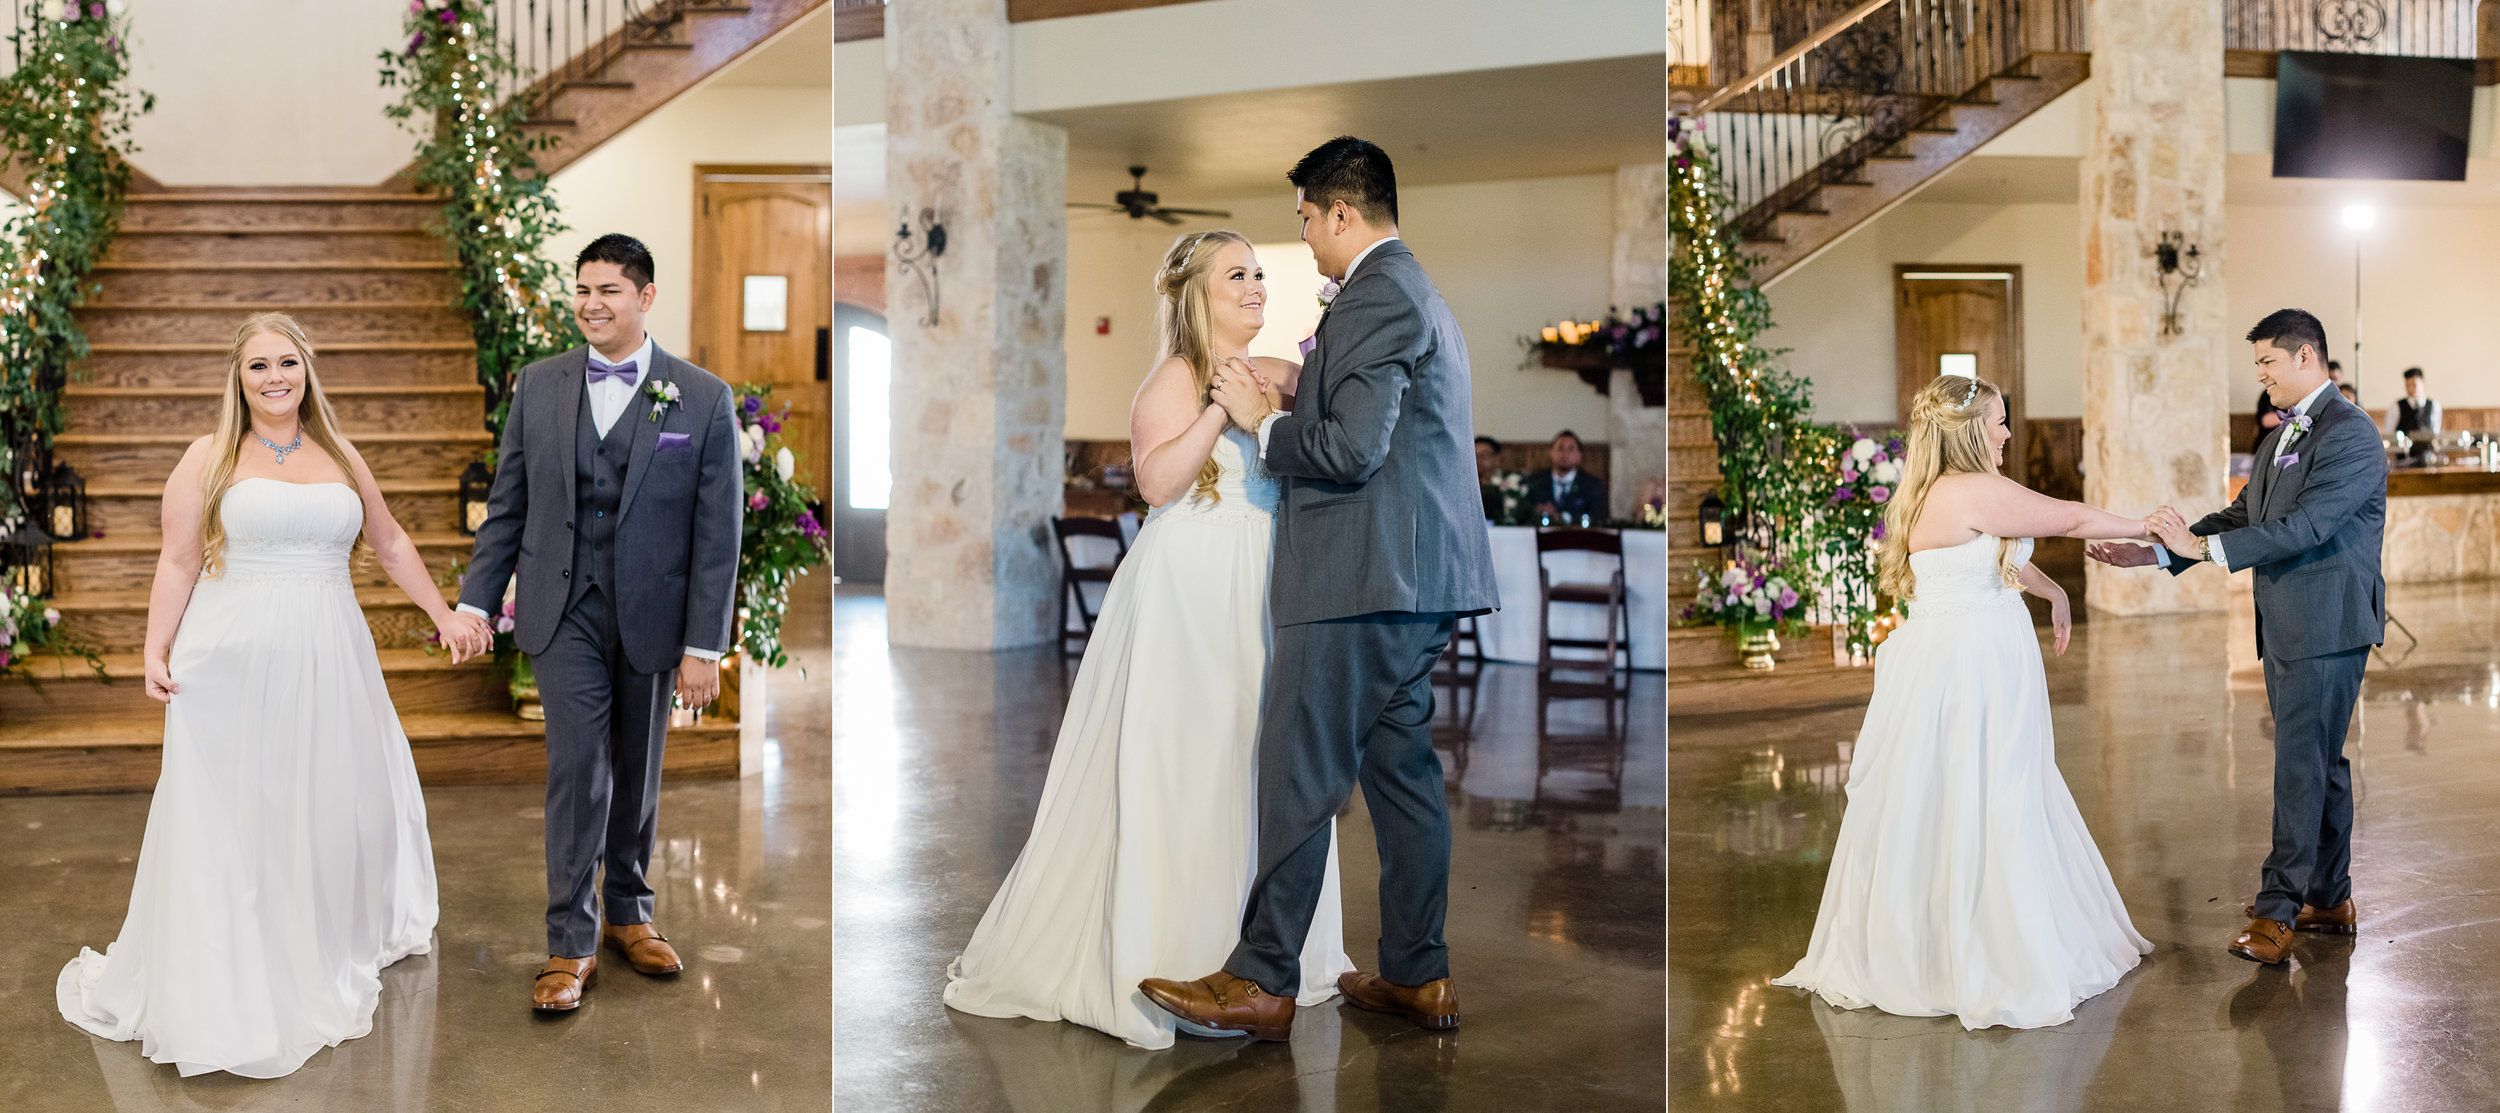 Whitney & Nathan Preview-29.jpg